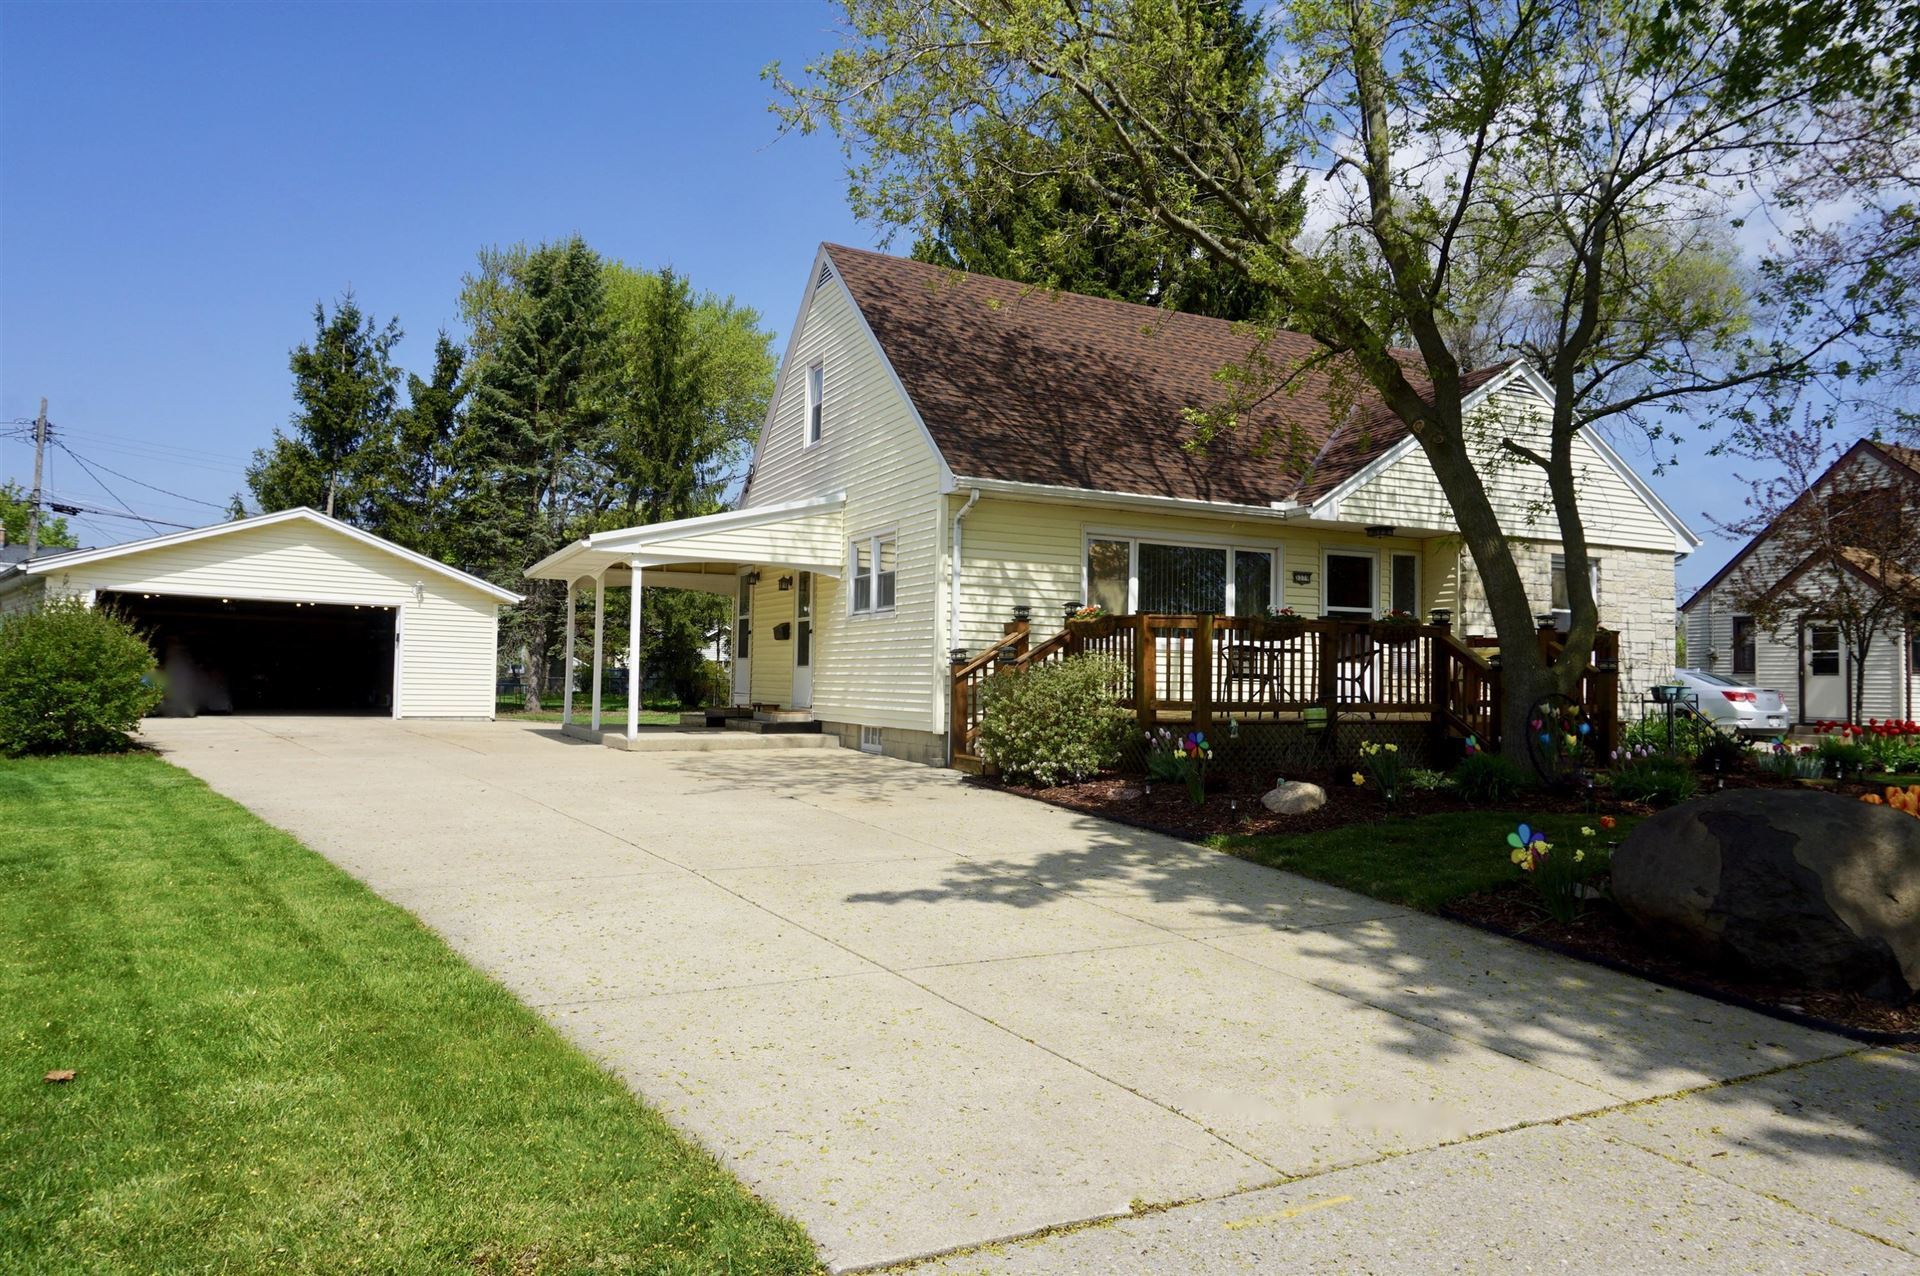 3379 S 64th St, Milwaukee, WI 53219 - #: 1689343